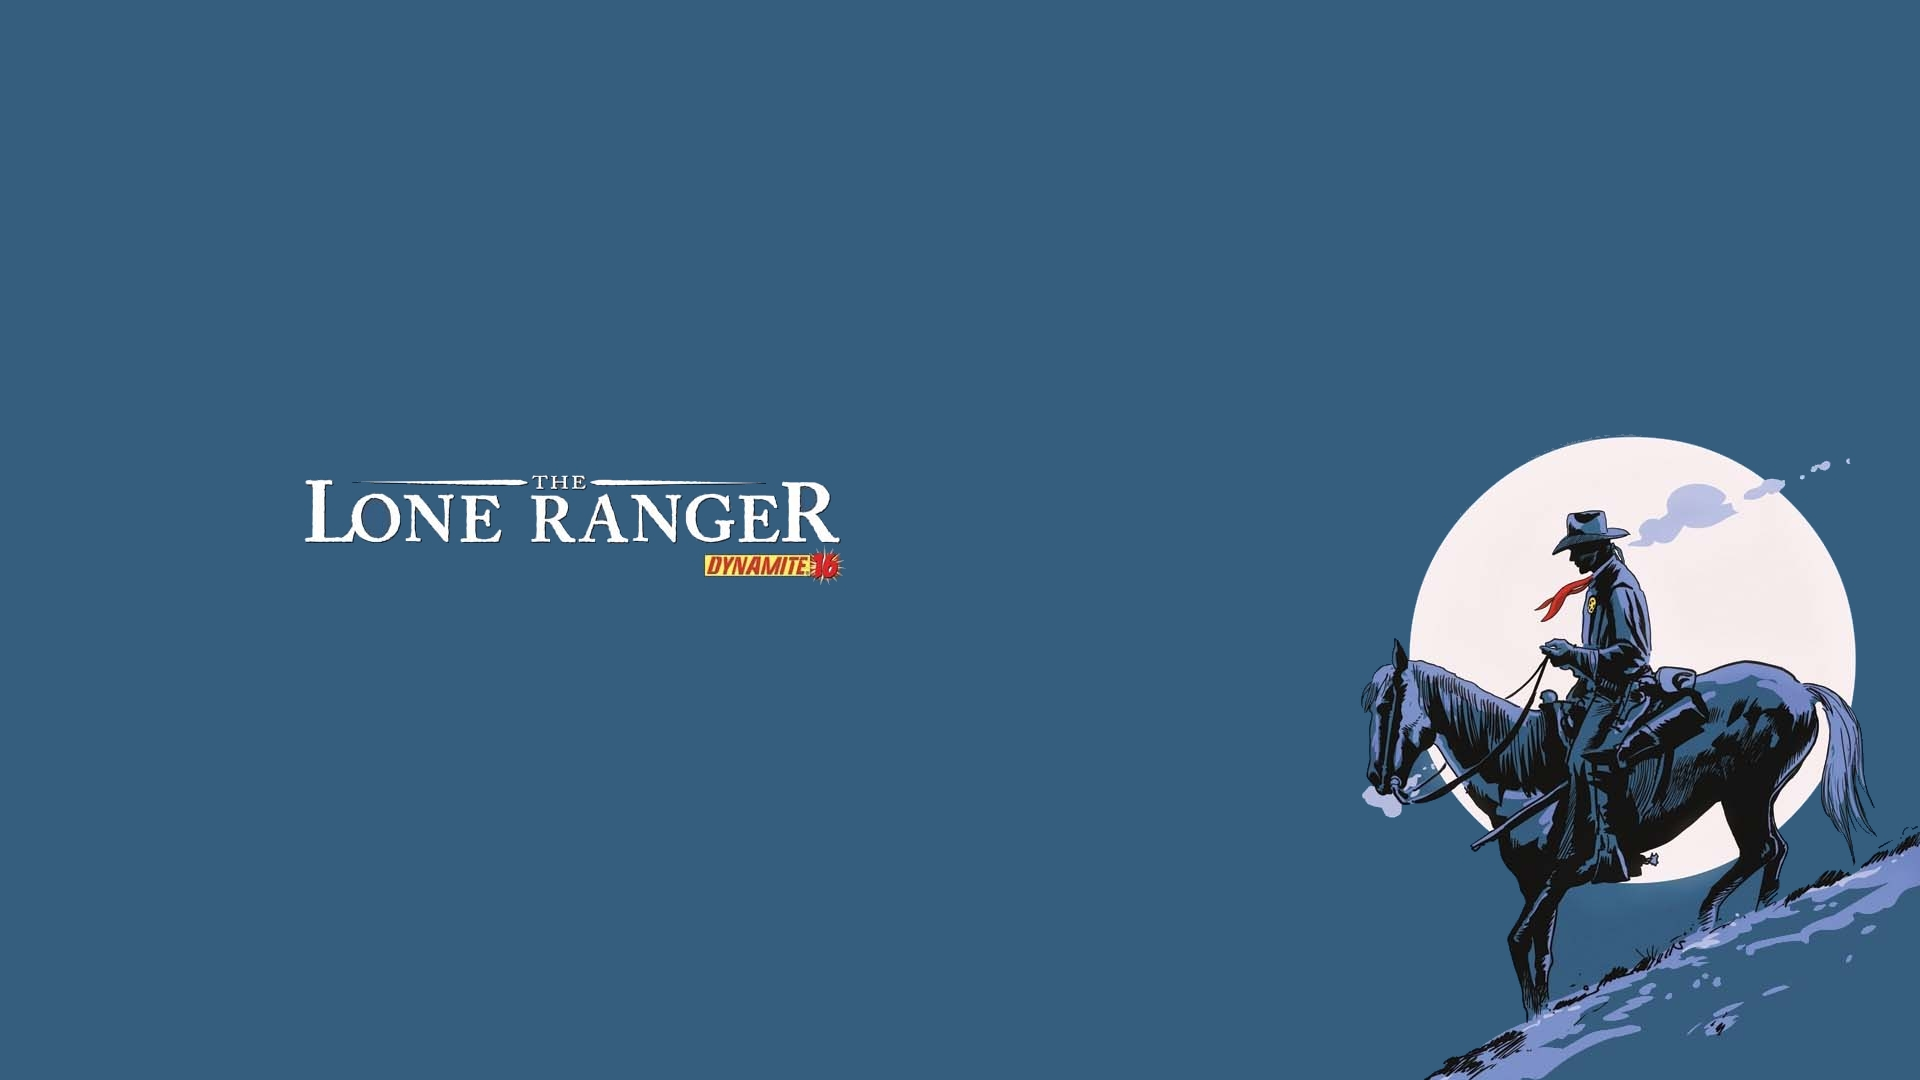 New York Rangers Wallpaper Iphone 6 The Lone Ranger Full Hd Wallpaper And Background